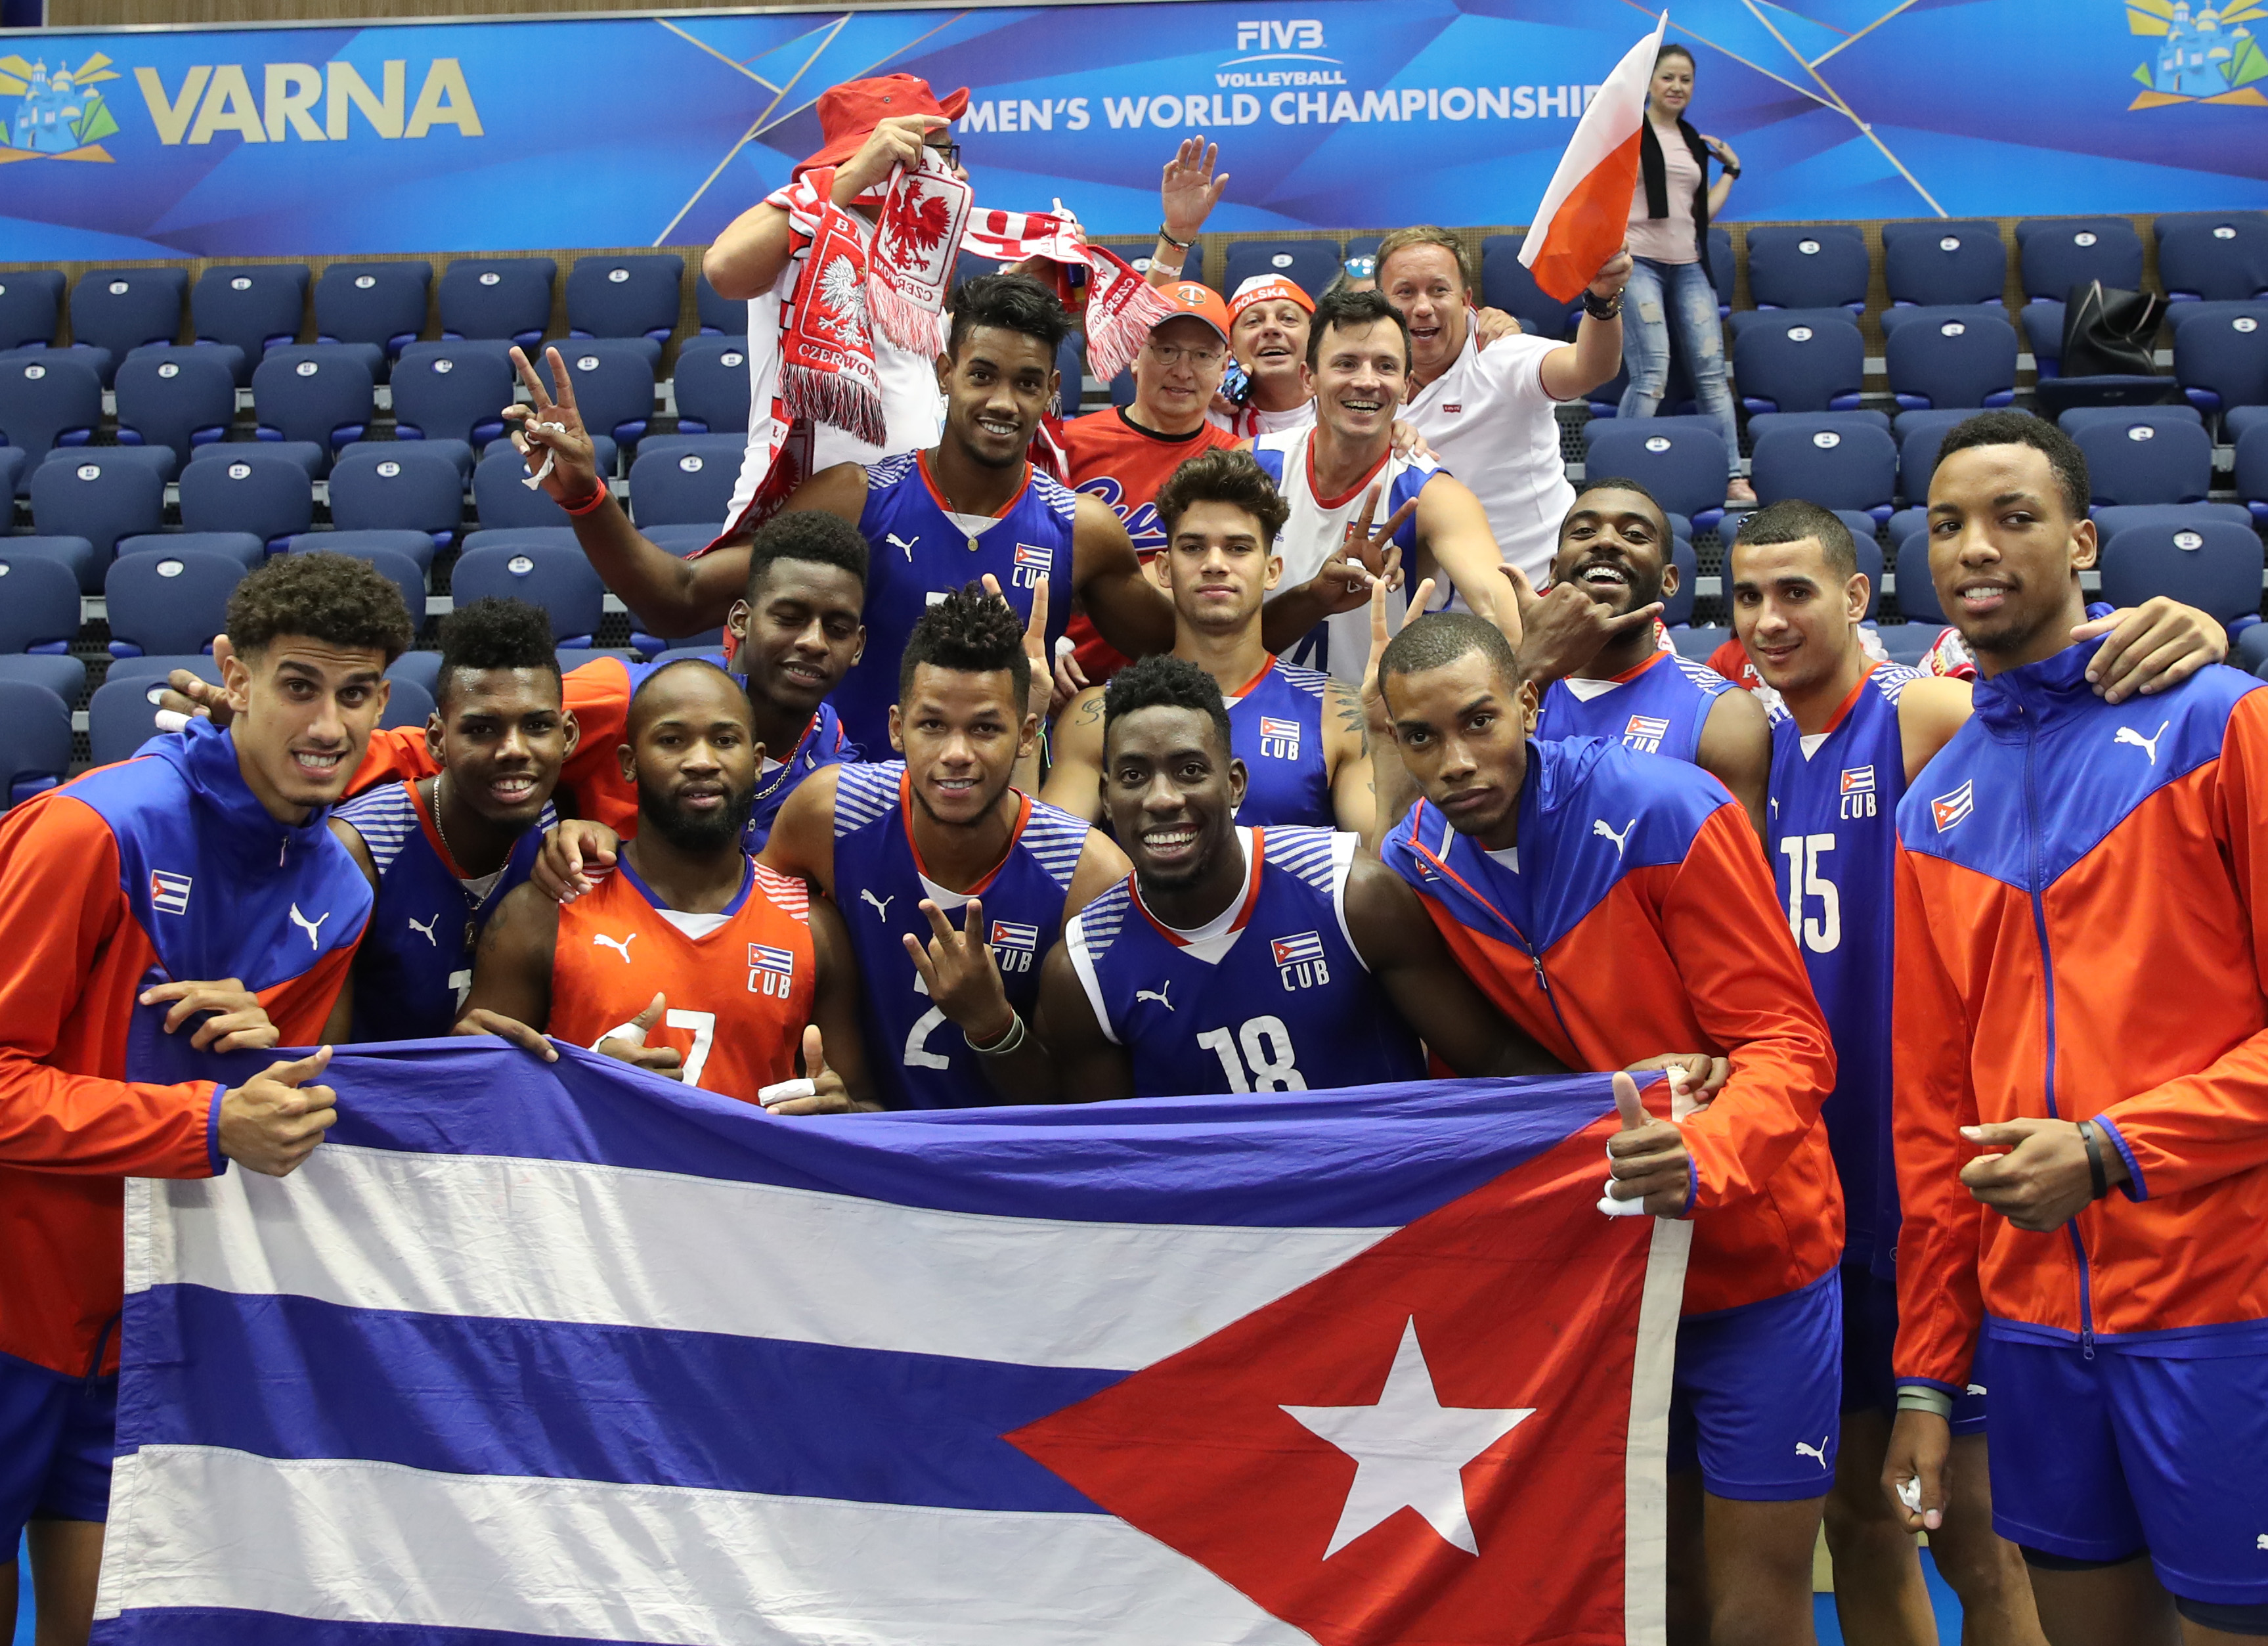 Overview - Cuba - FIVB Volleyball Men's World Championship